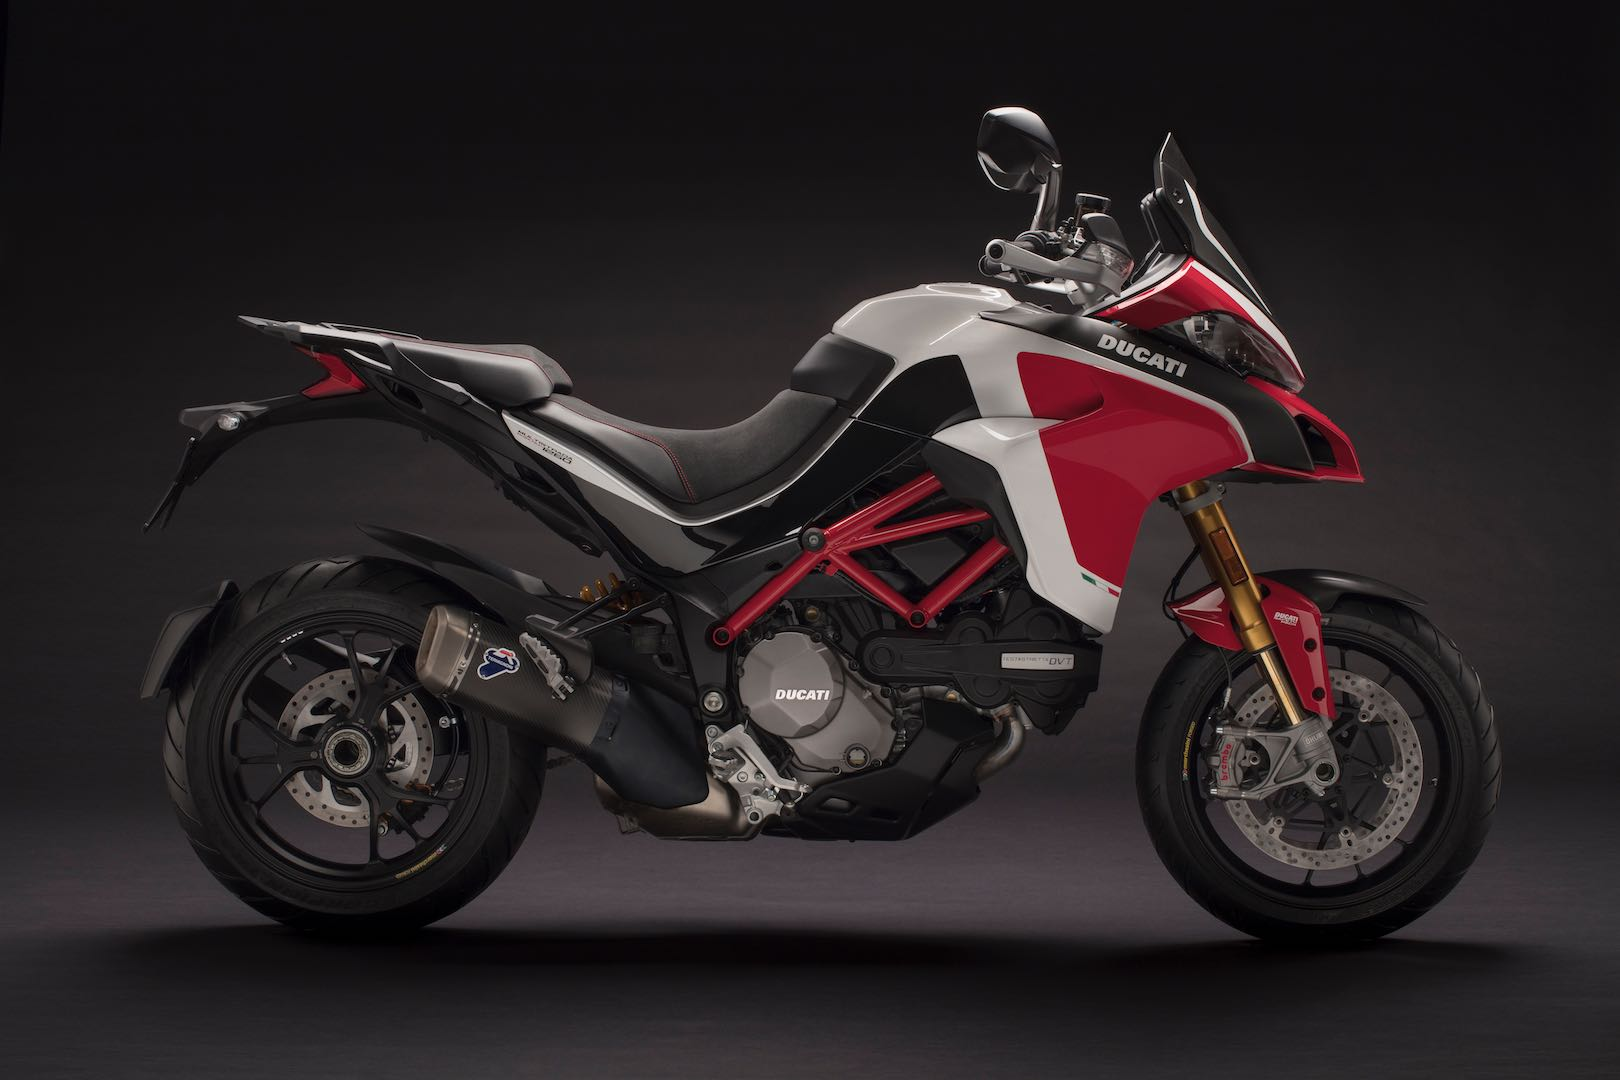 2018 ducati multistrada 1260 first look 13 fast facts. Black Bedroom Furniture Sets. Home Design Ideas